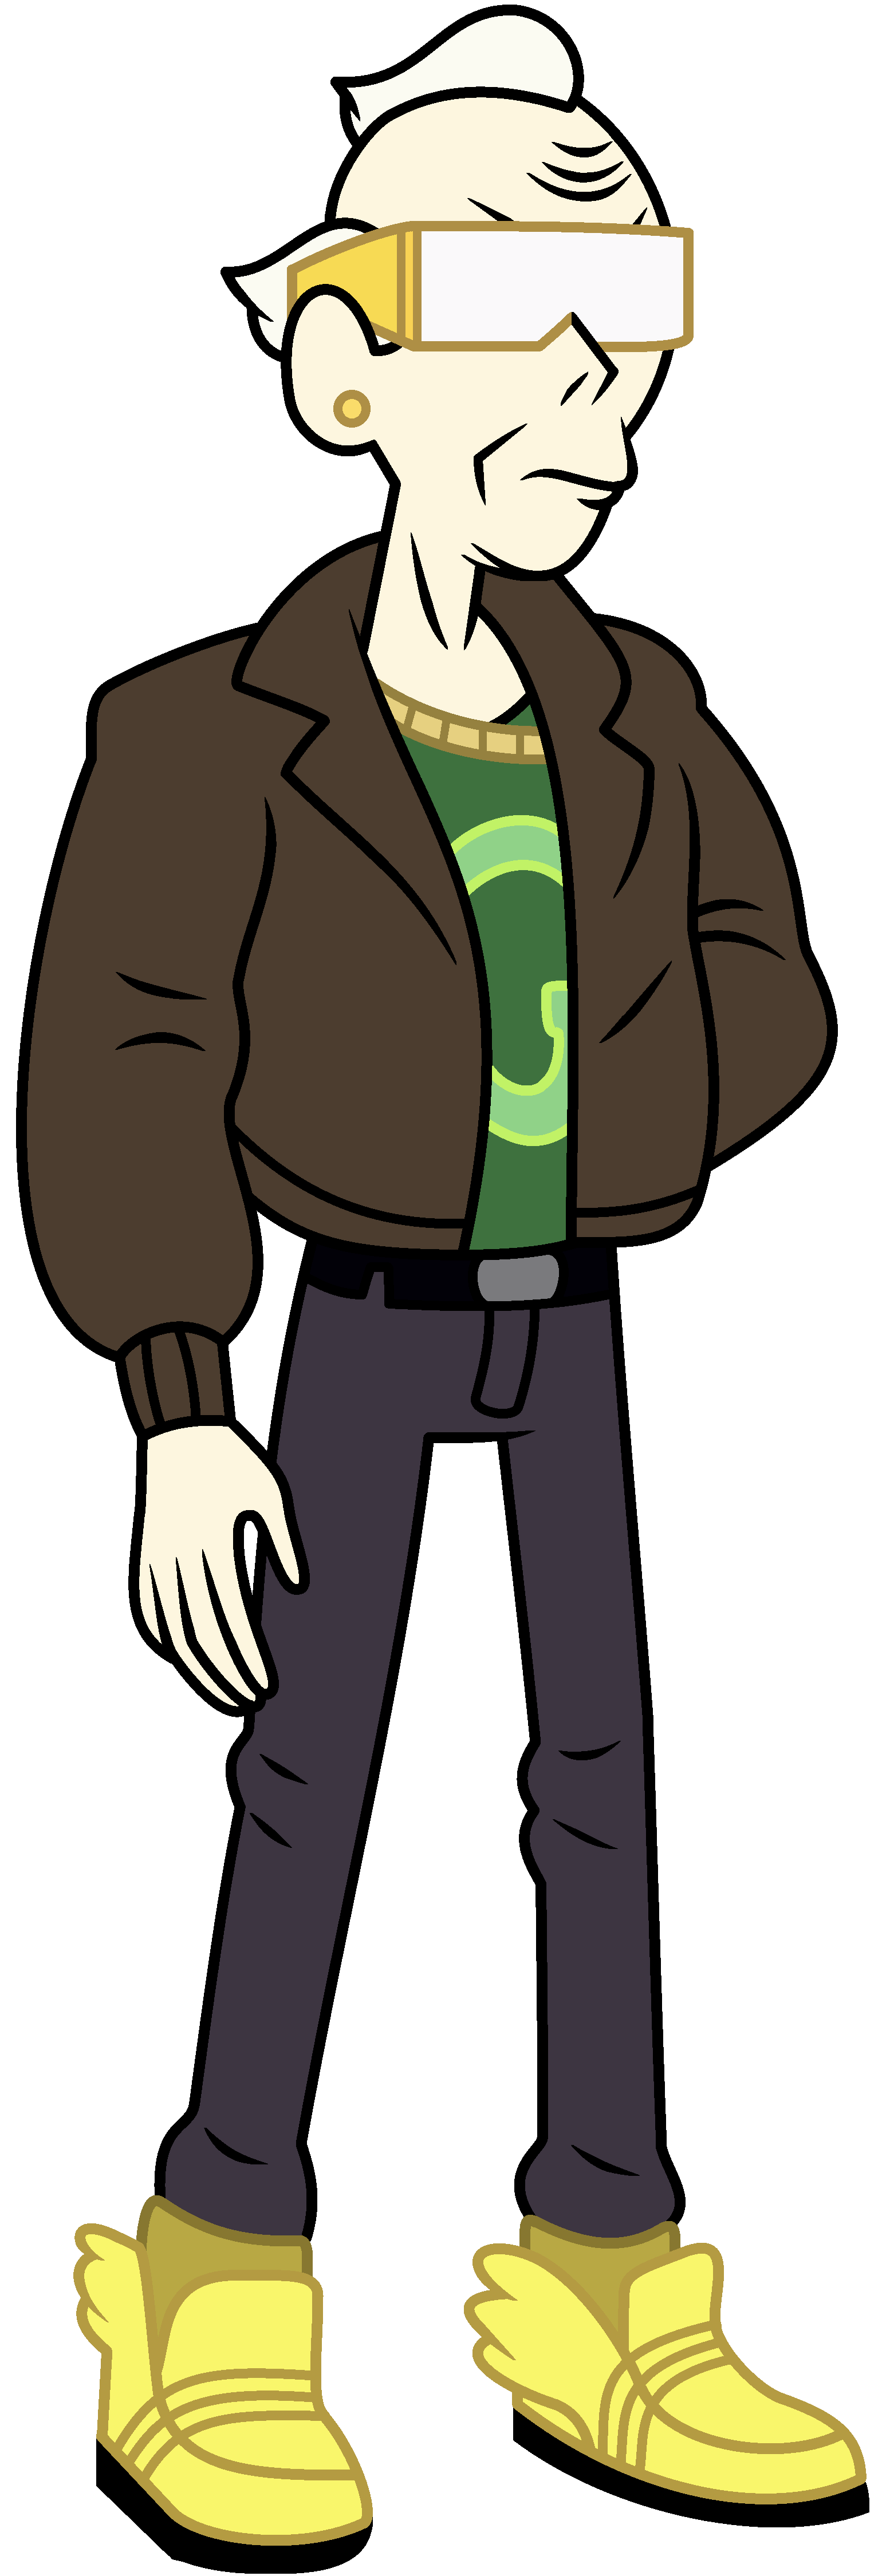 Marty steven universe wiki. Manager clipart professional appearance